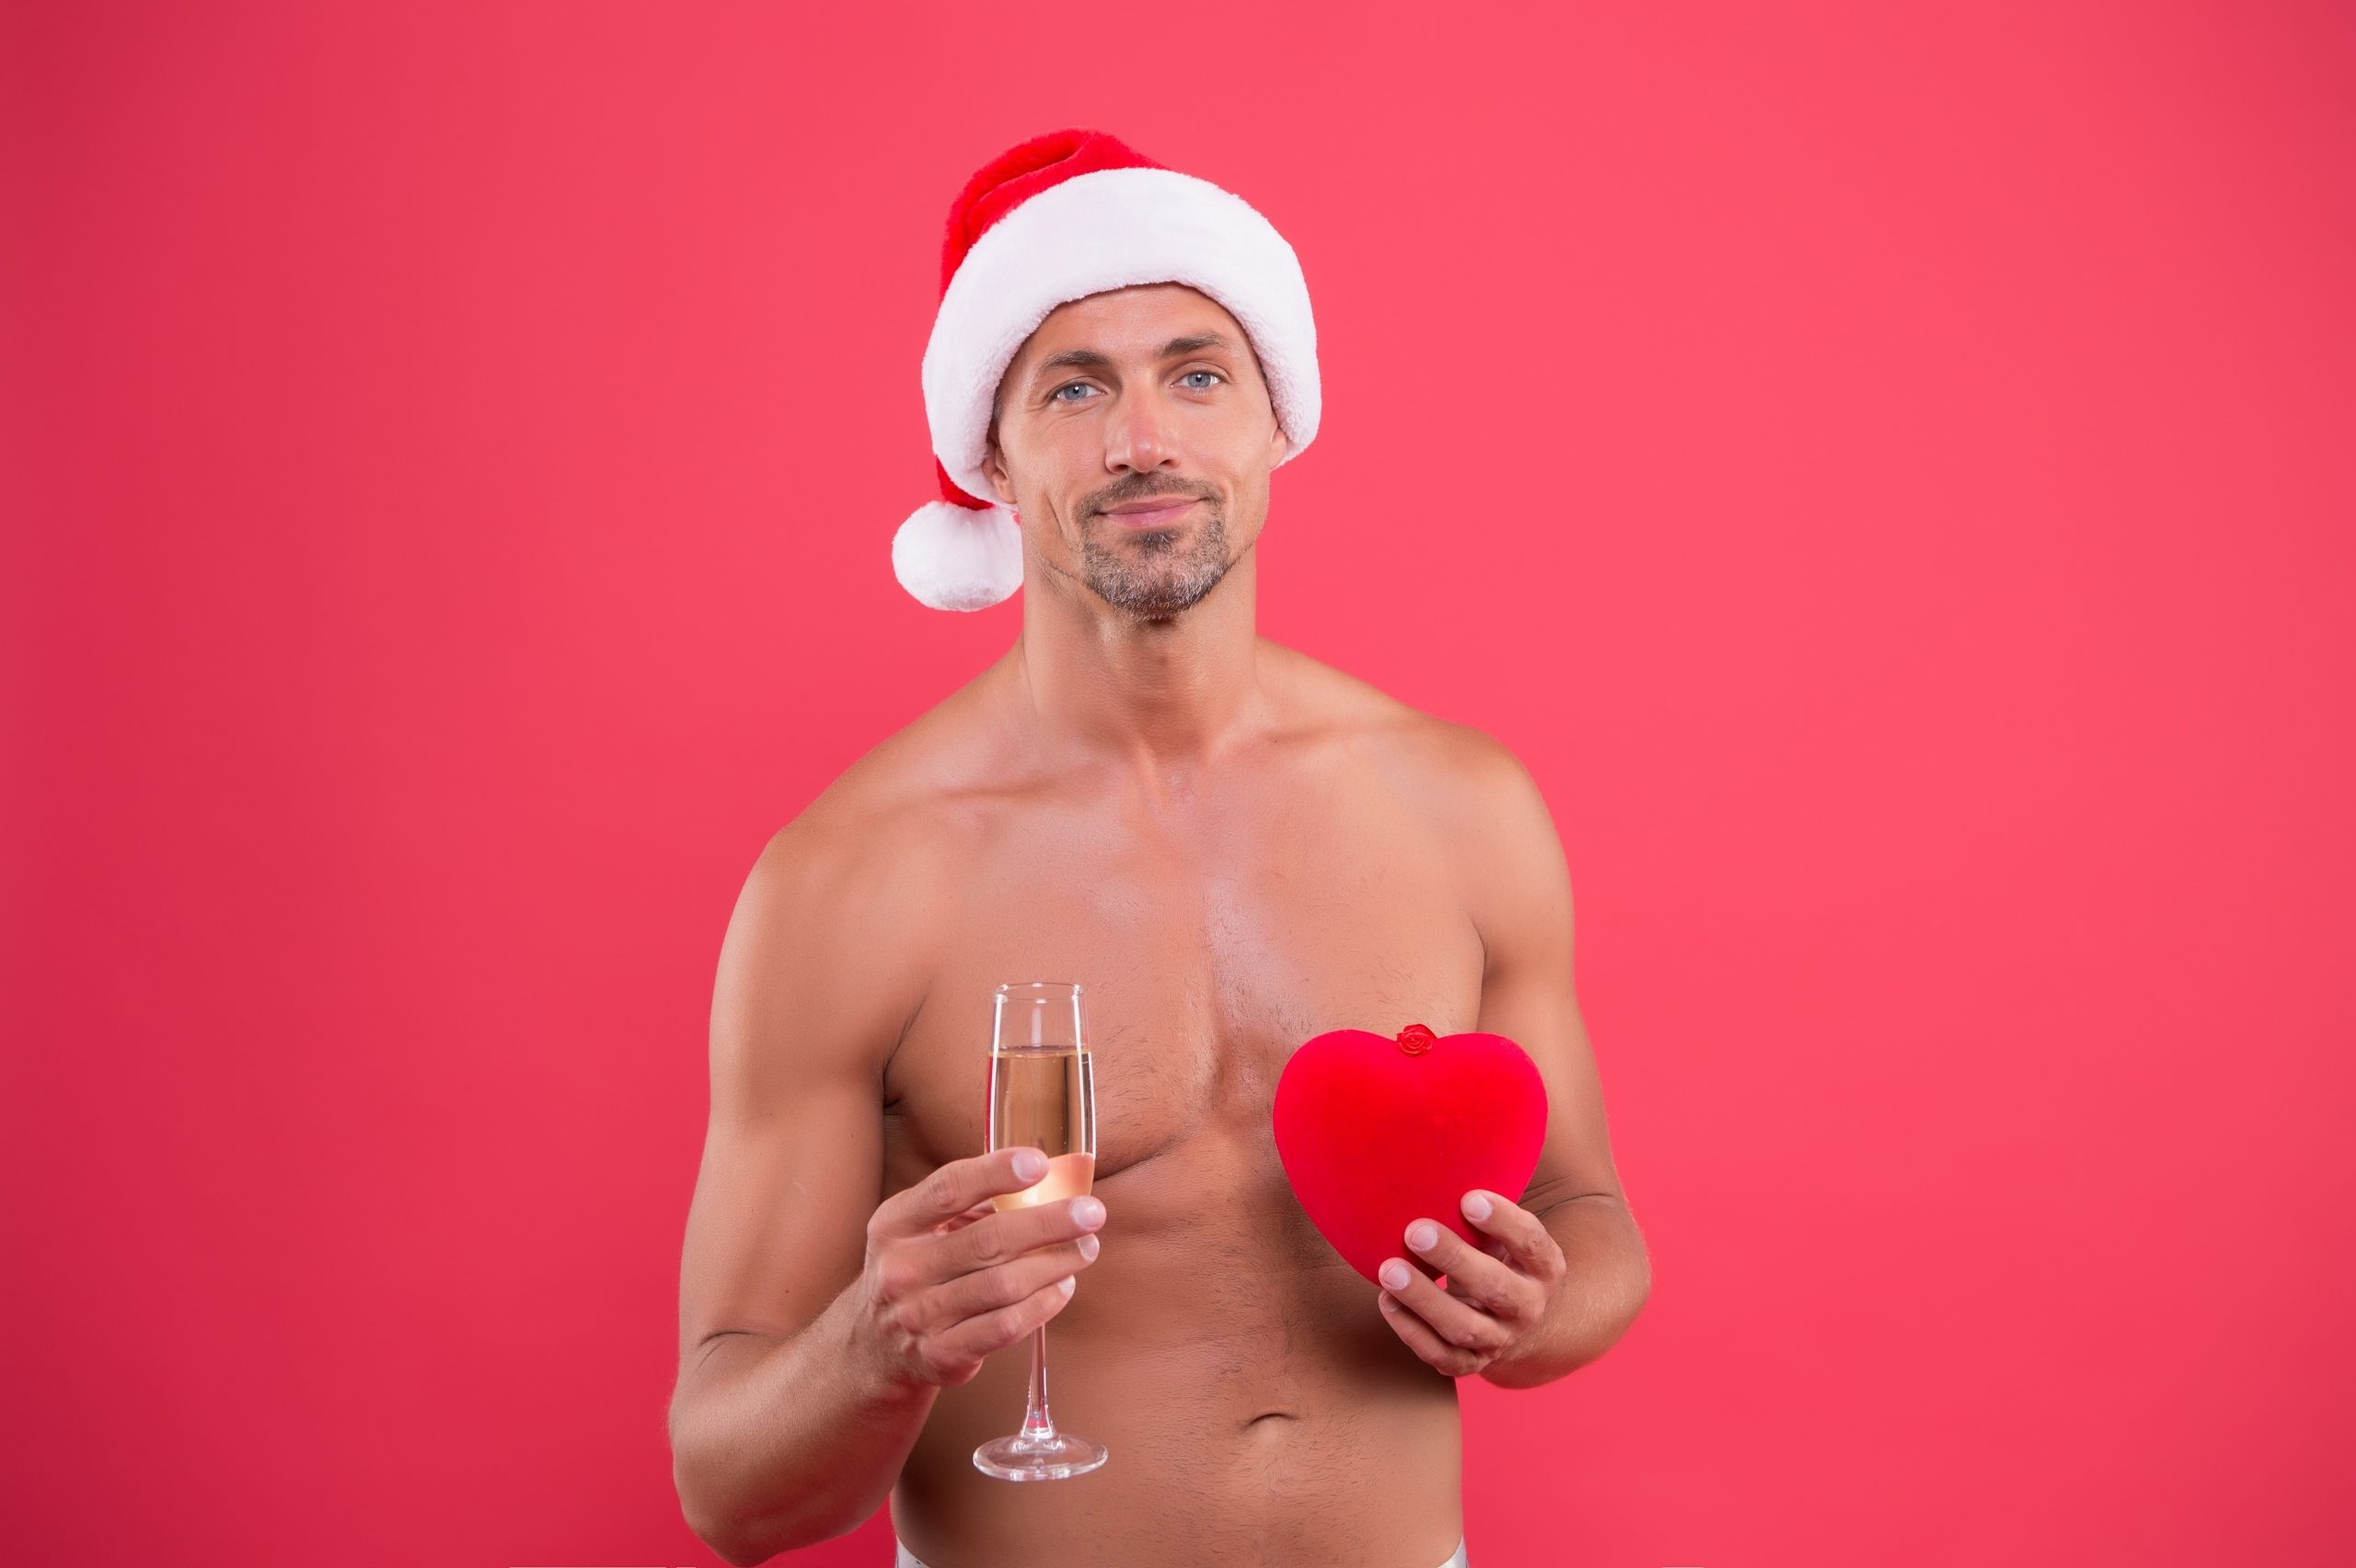 Naughty Santa gives an erotic gift man naked in Santa hat with champagne